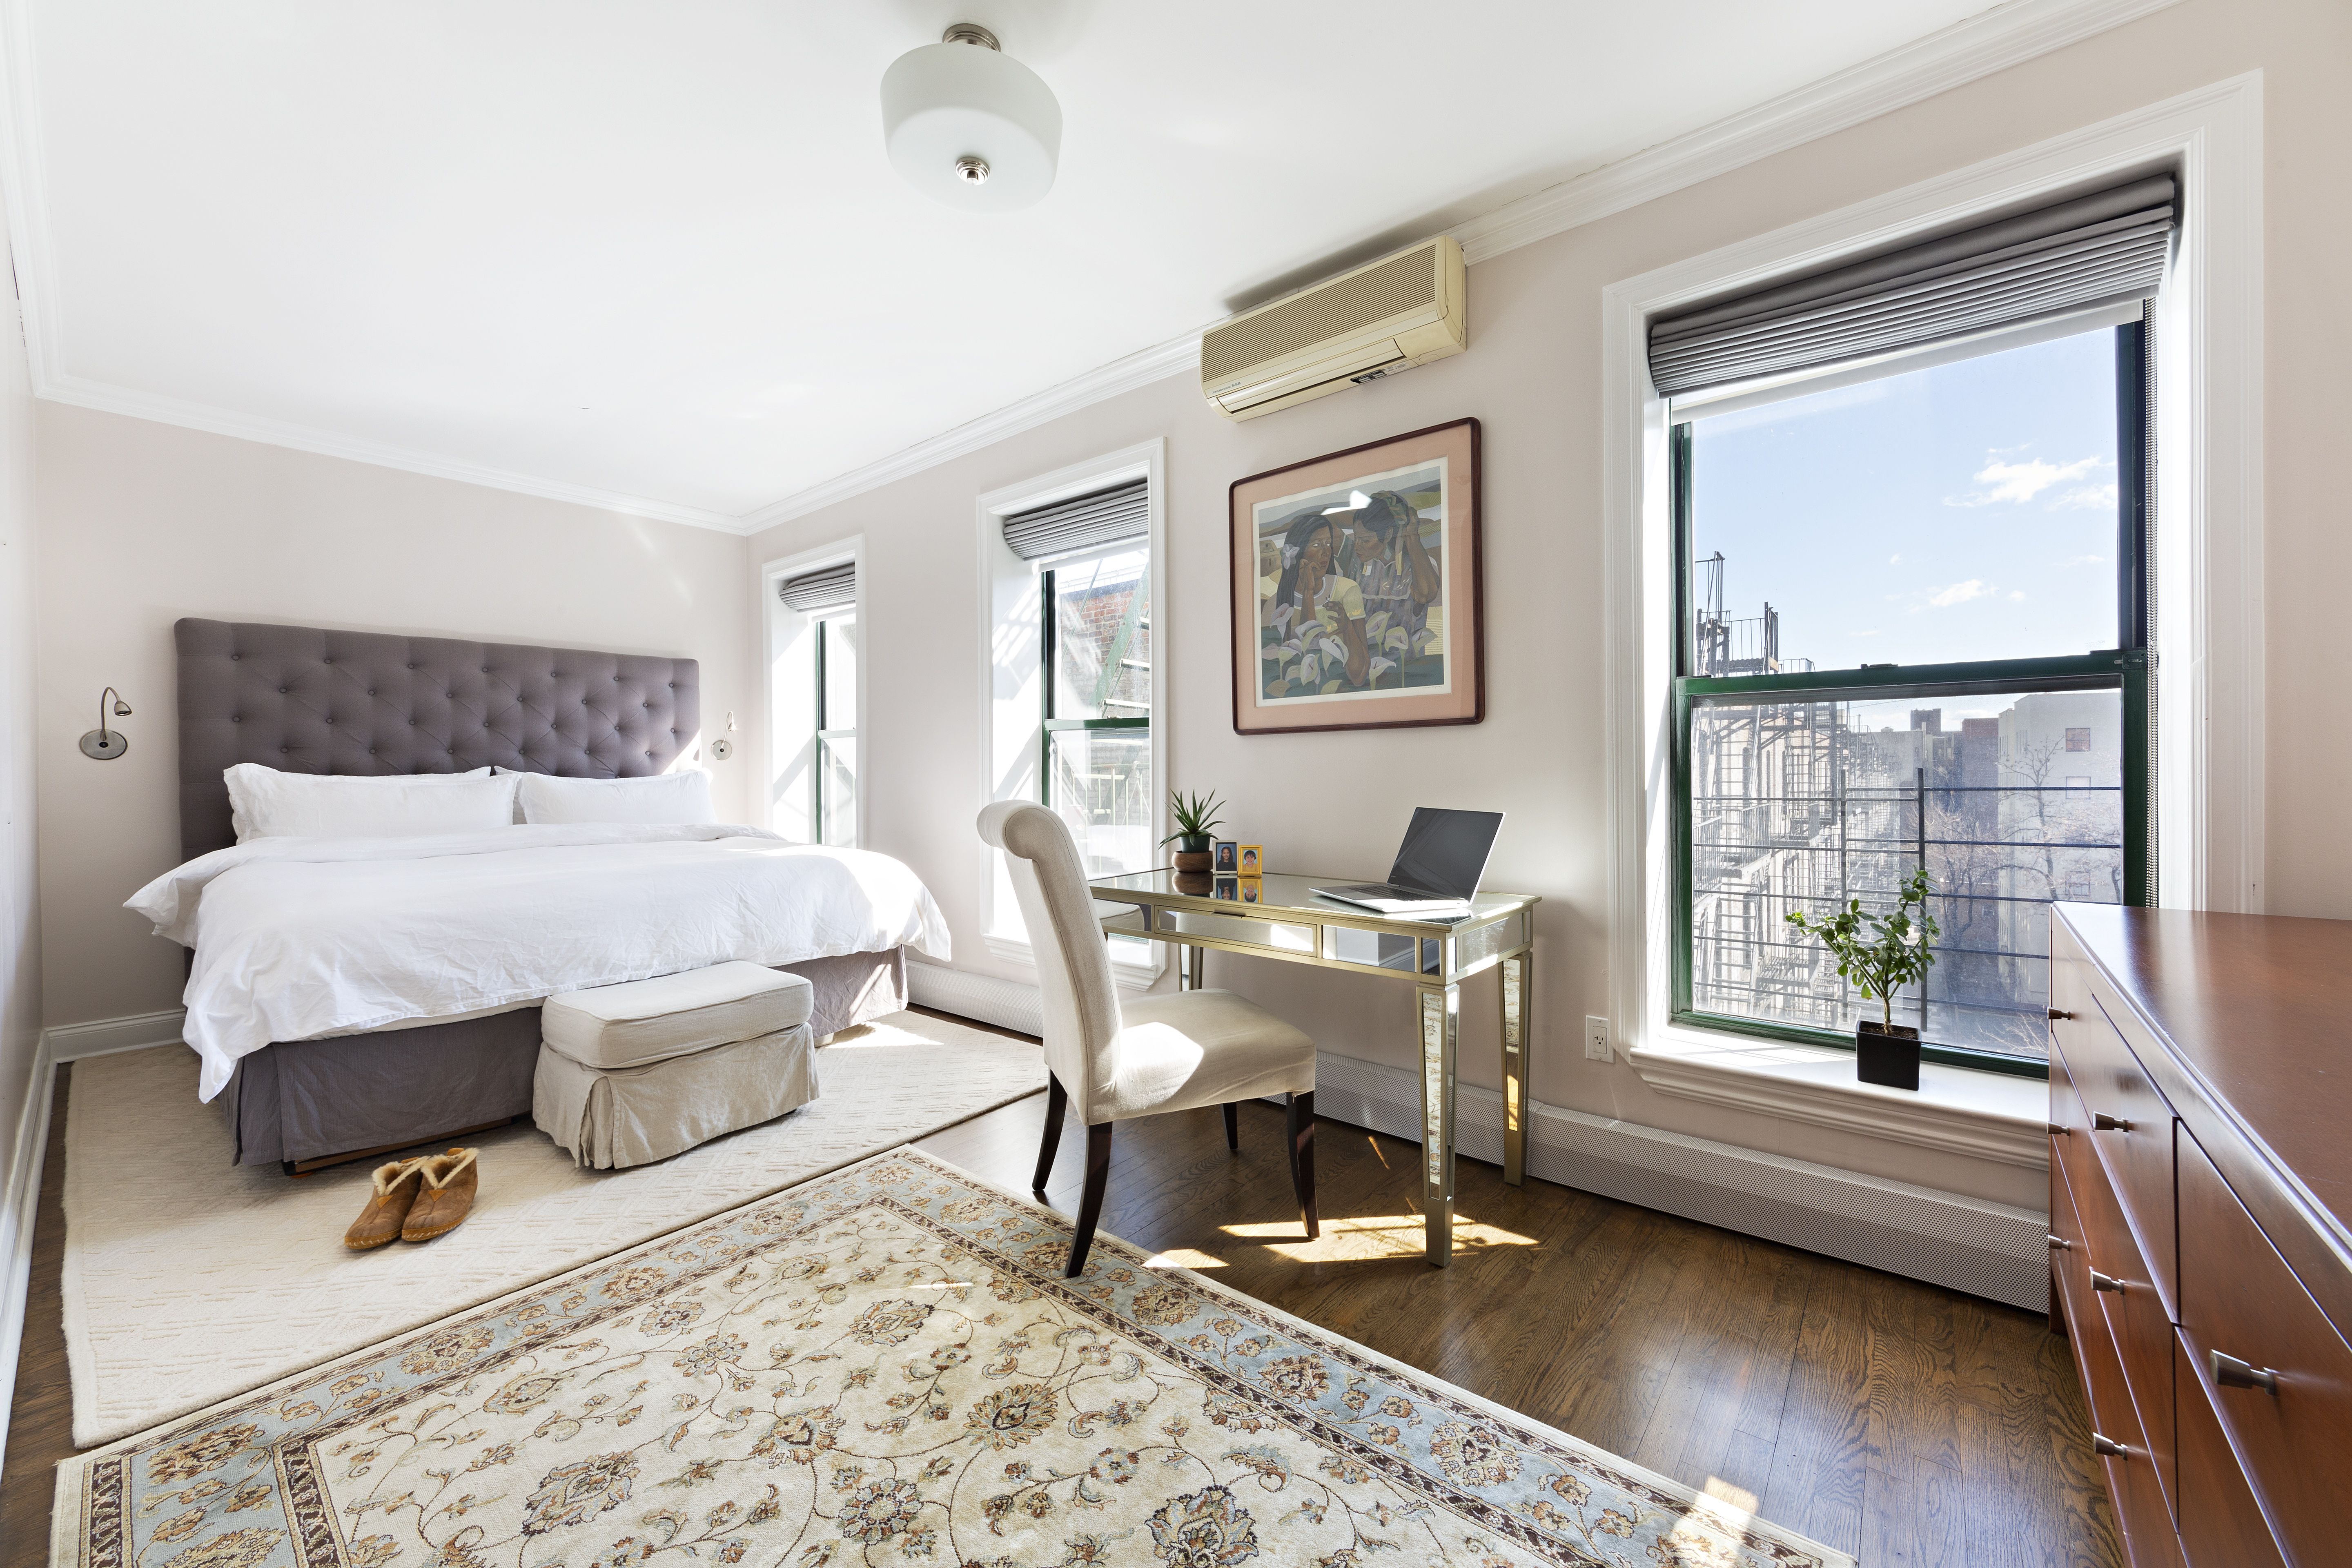 A bedroom with three floor-to-ceiling windows, hardwood floors, a large bed, and a rug.